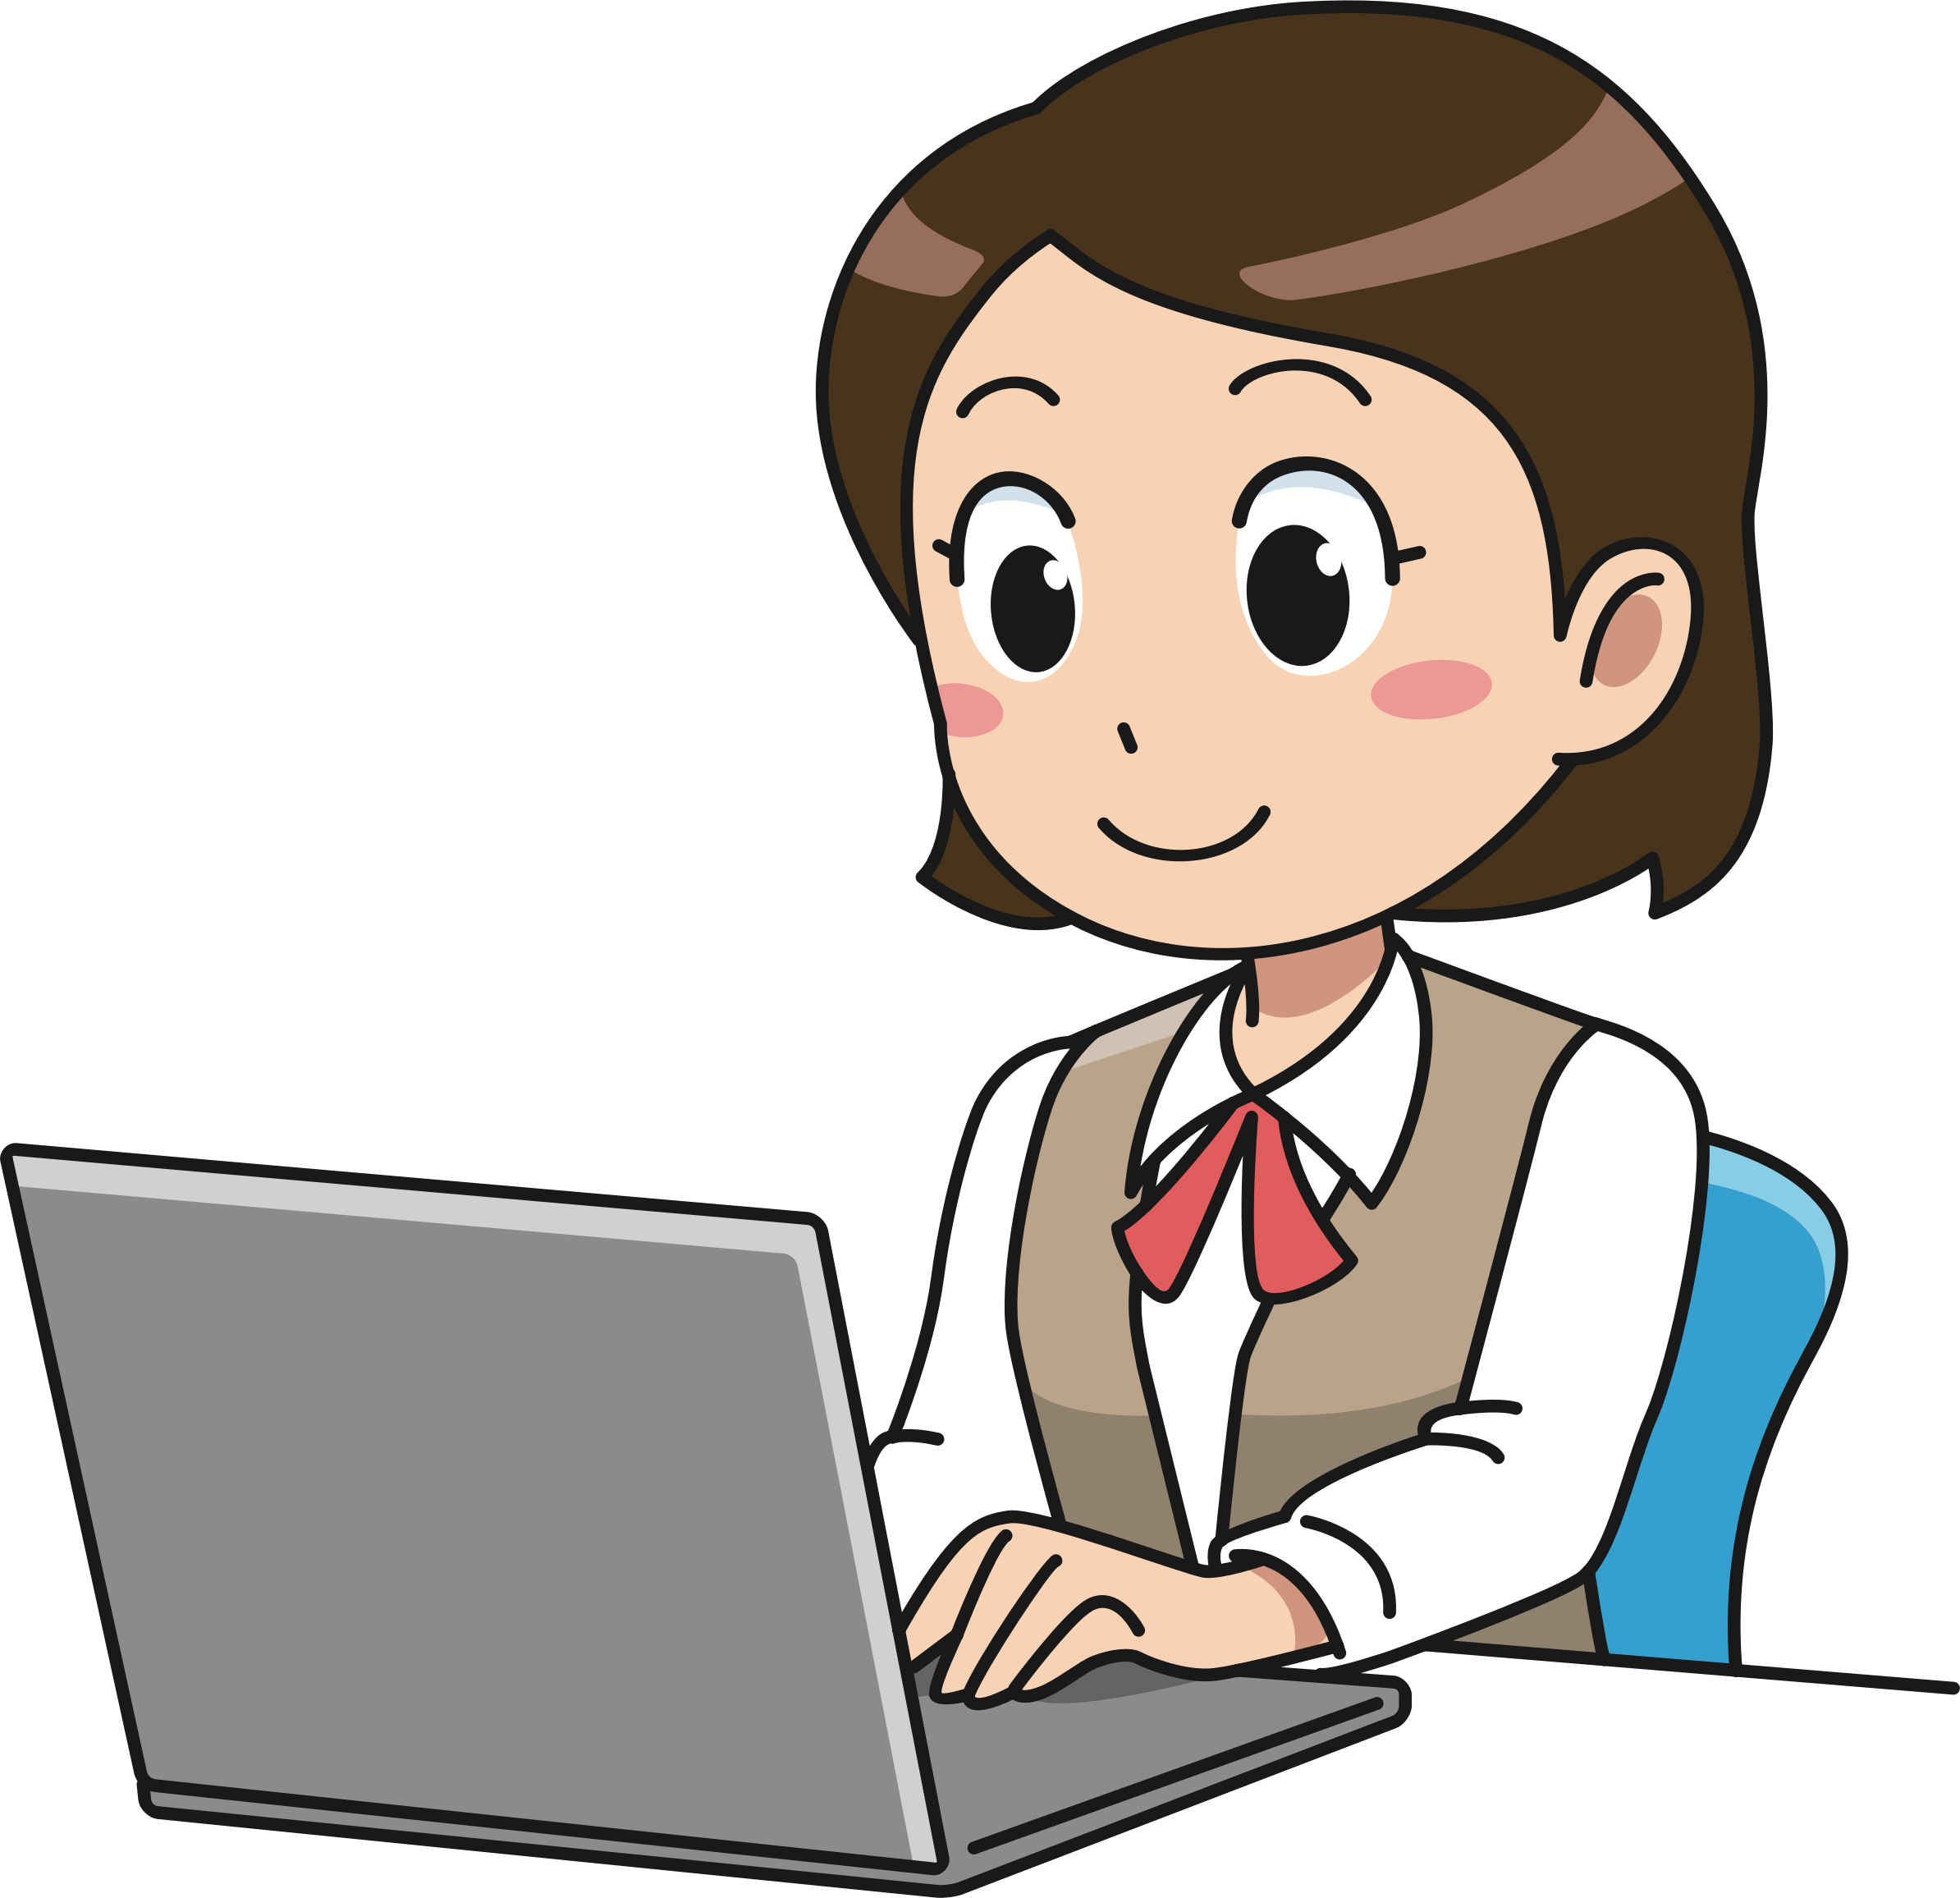 Computer user big image. Person clipart female